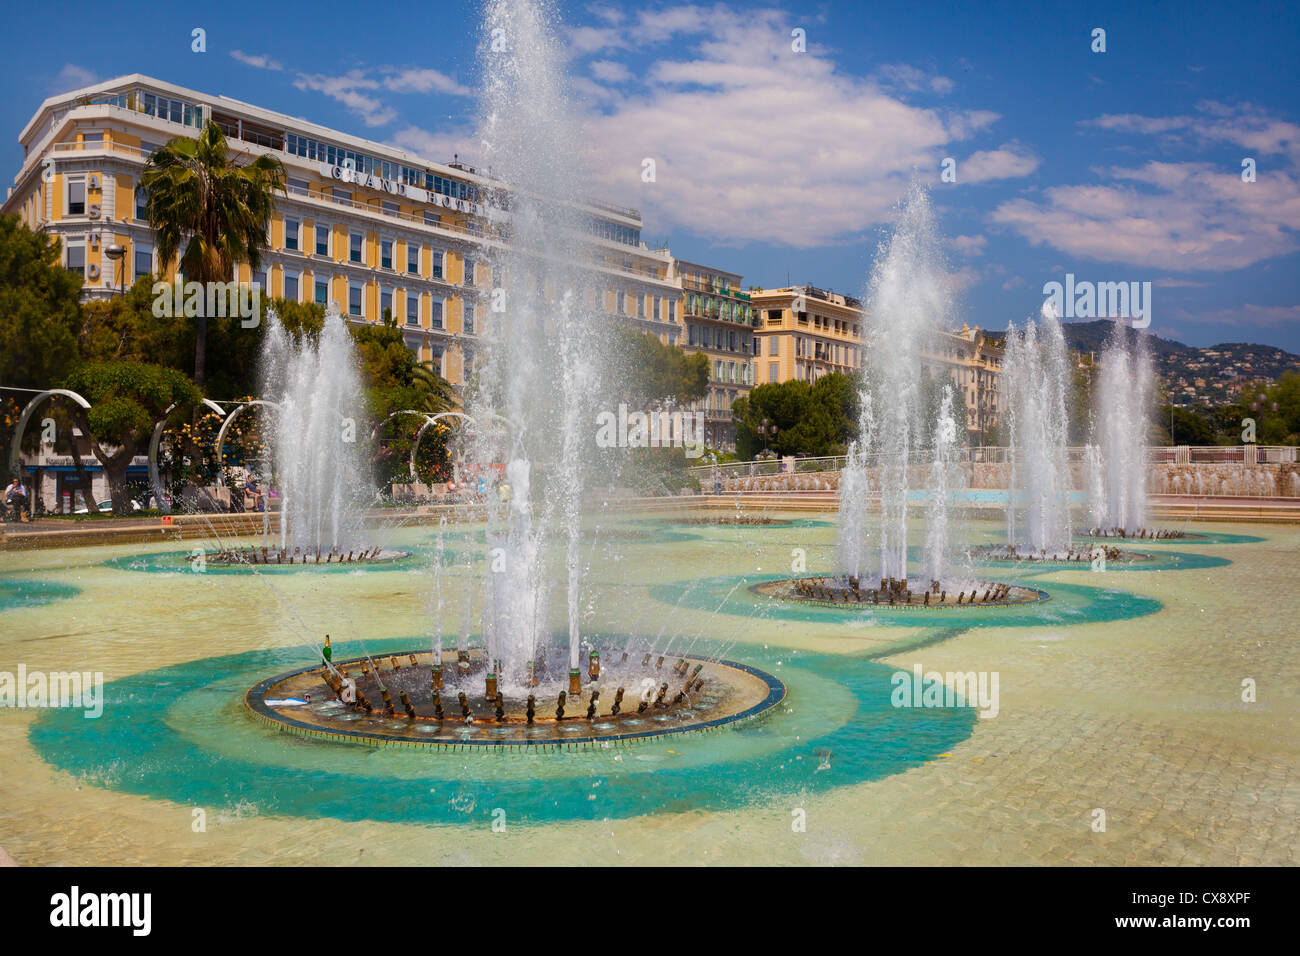 Fountains at Place Massena in downtown Nice on the French Riviera (Cote d'Azur) Stock Photo